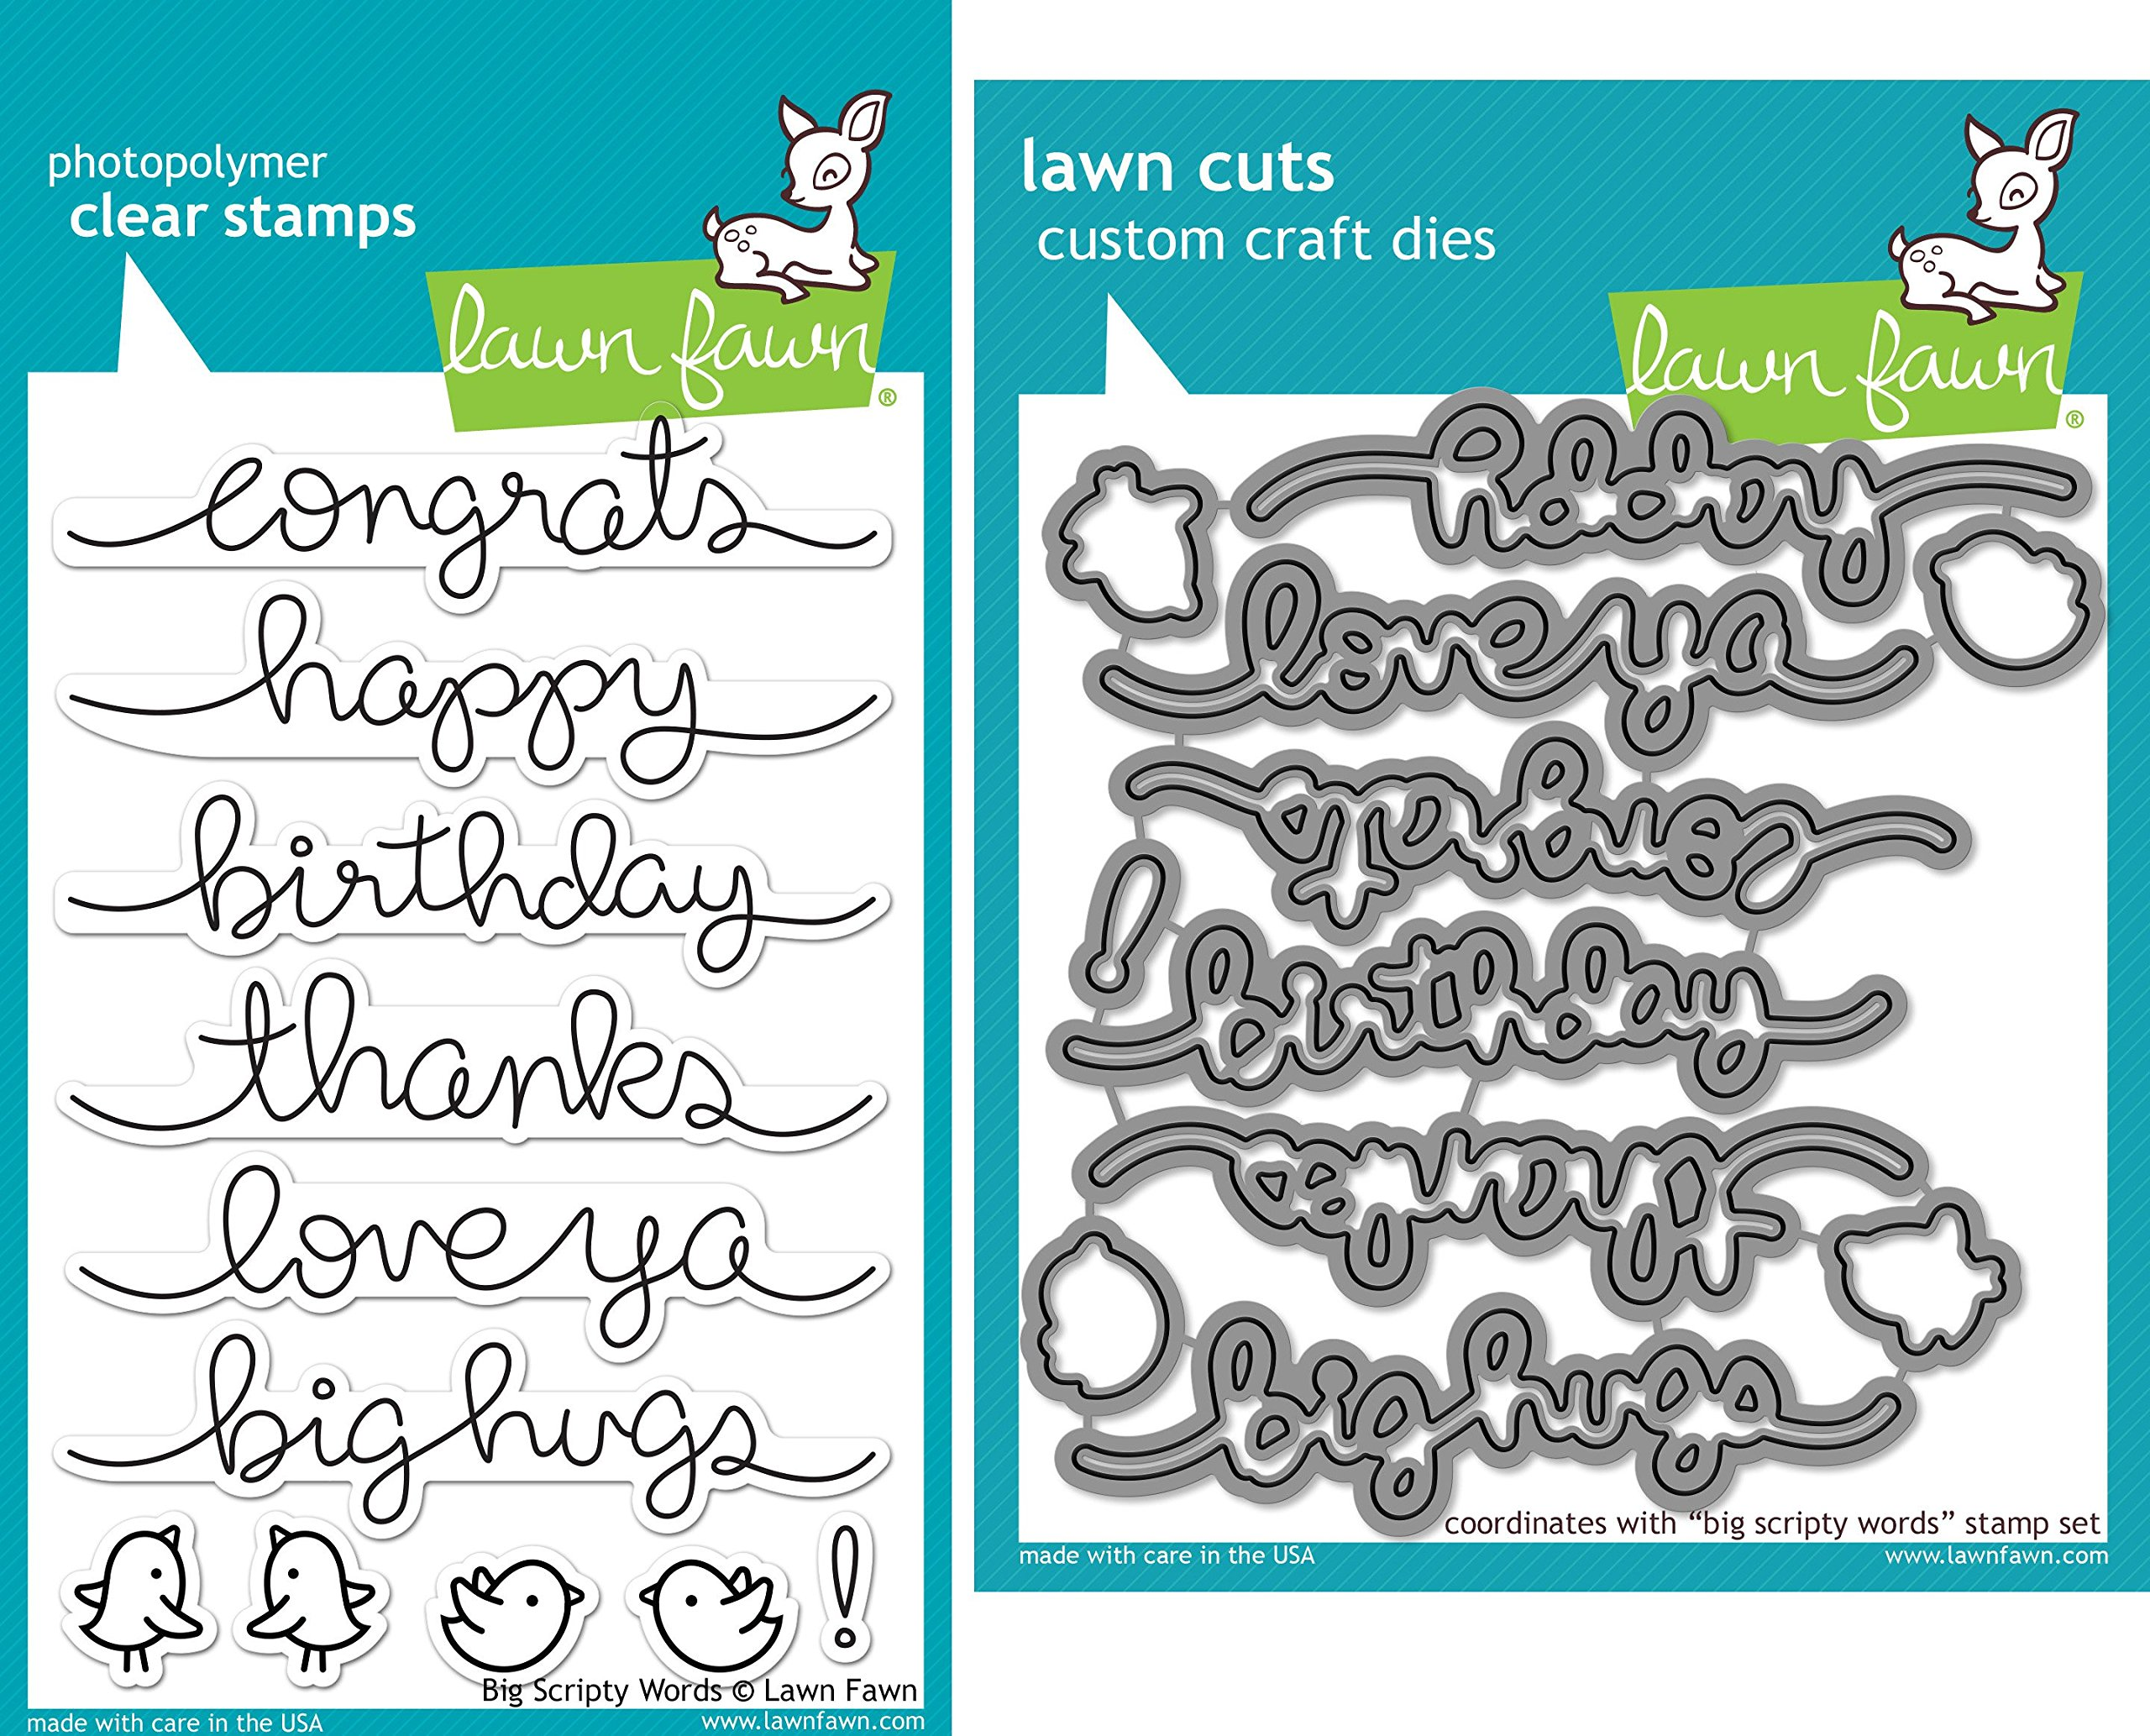 Lawn Fawn Big Scripty Words Stamp and Die Set - Two item Bundle